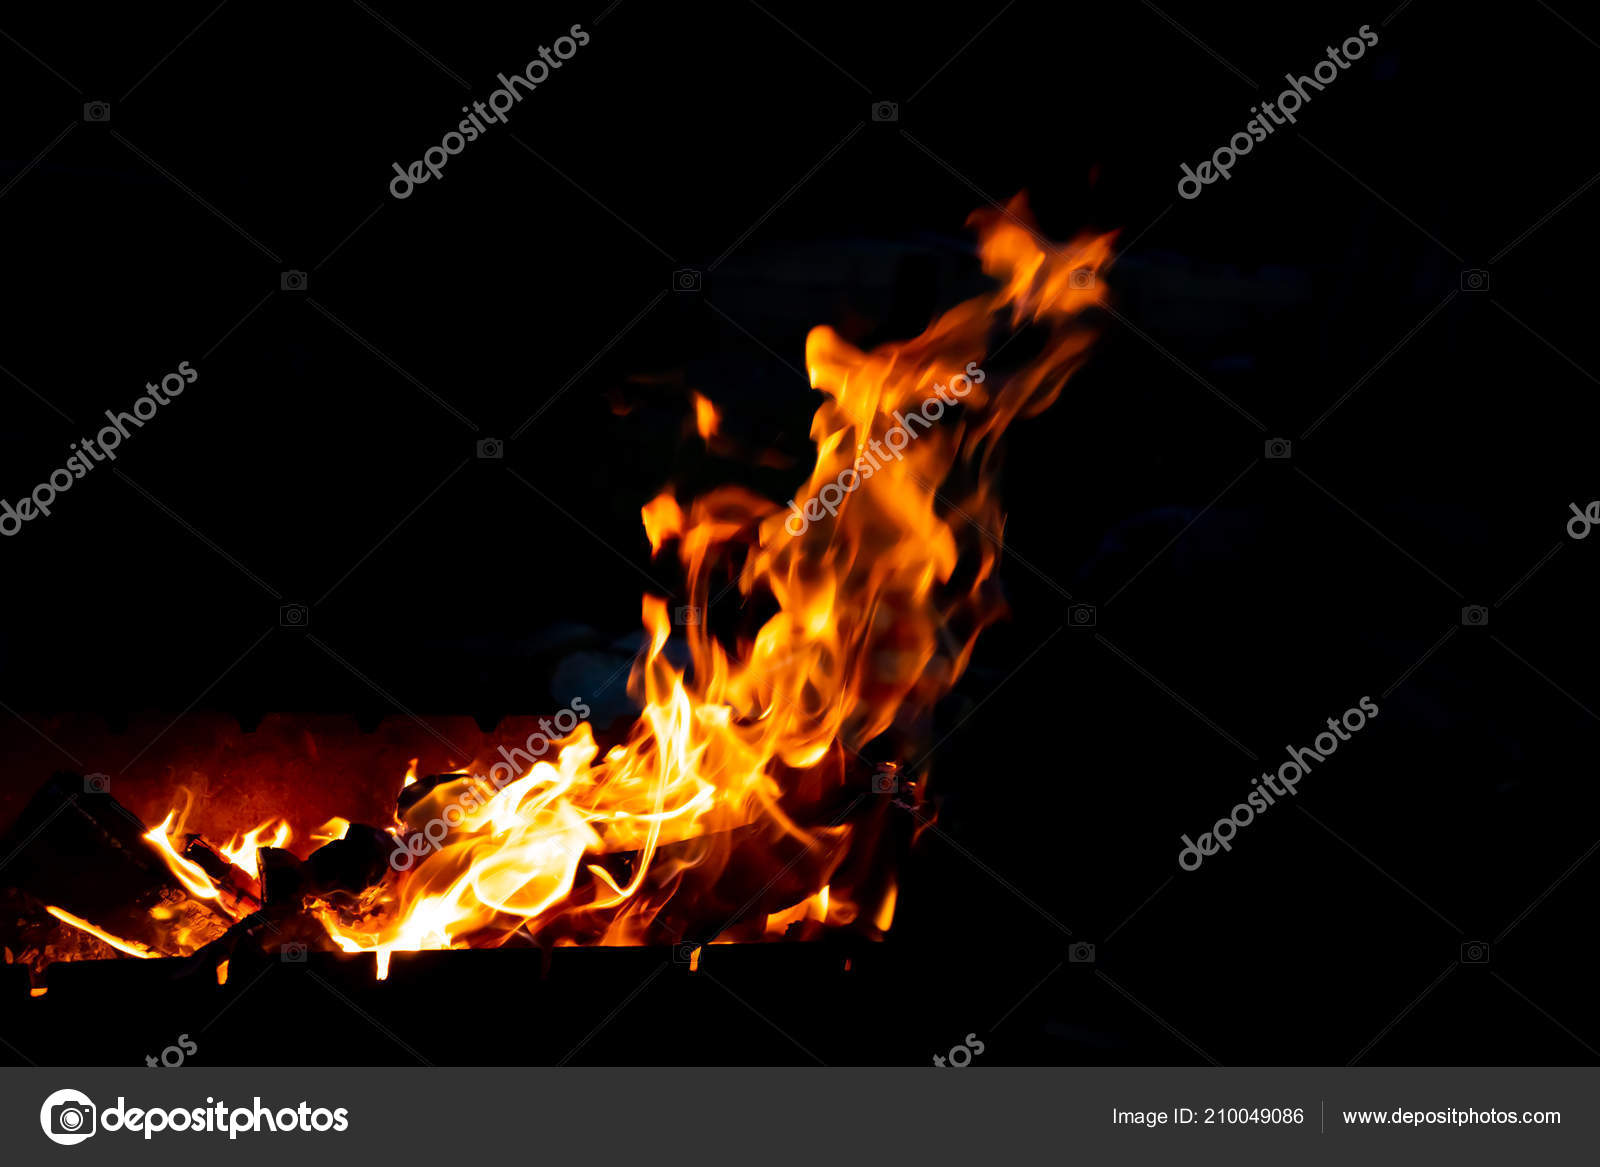 Flames Fire Burning Coals Grill Late Night Copy Paste